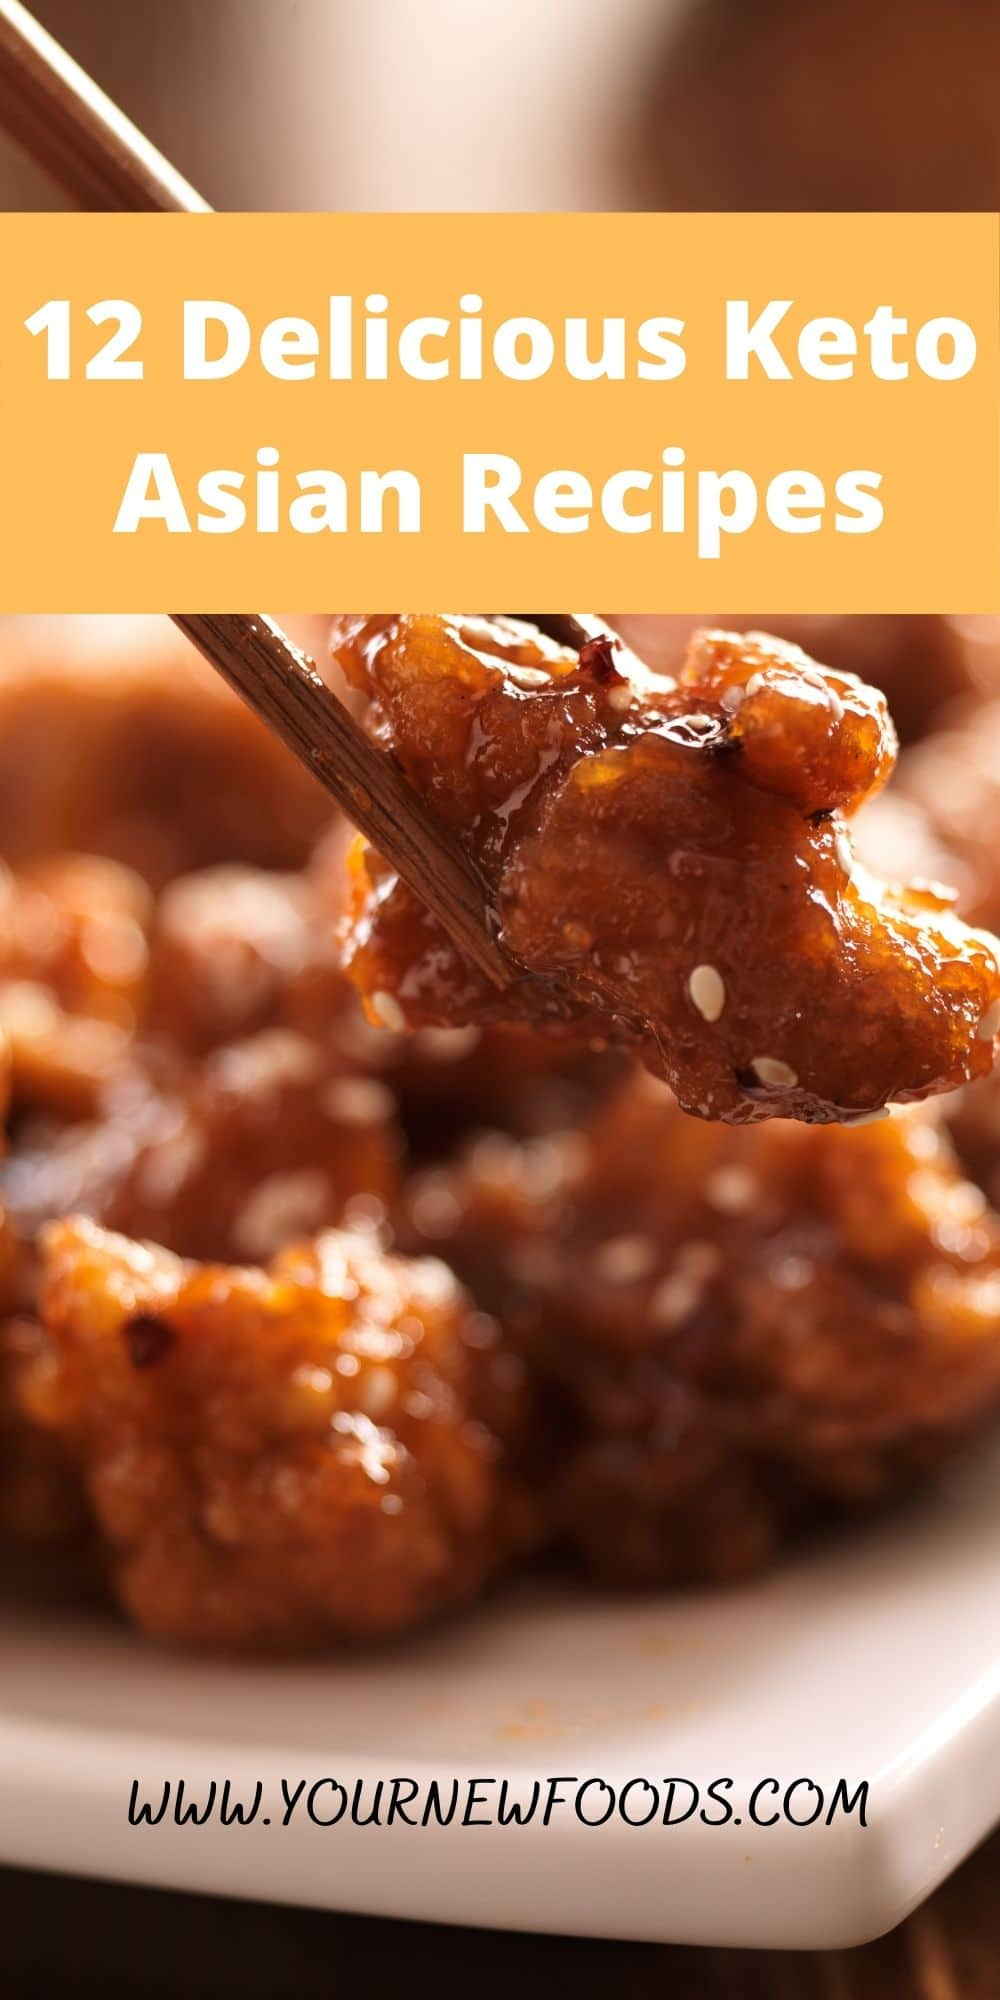 Delicious Keto Asian Recipes Showing orange chicken on a white plate